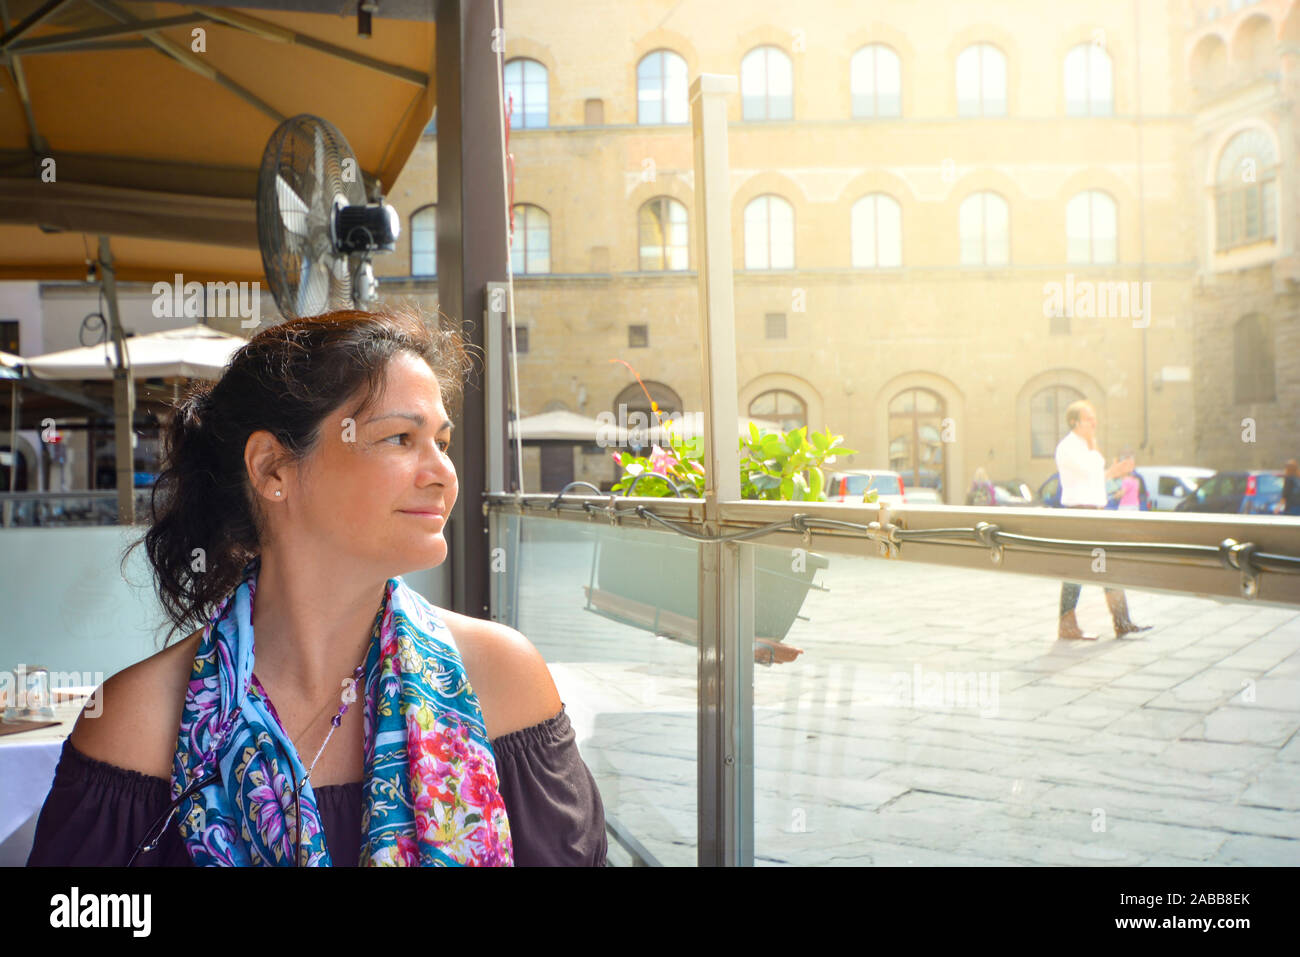 A thirty something attractive brunette gazes with appreciation at her surroundings at a sidewalk cafe in Florence, Italy Stock Photo